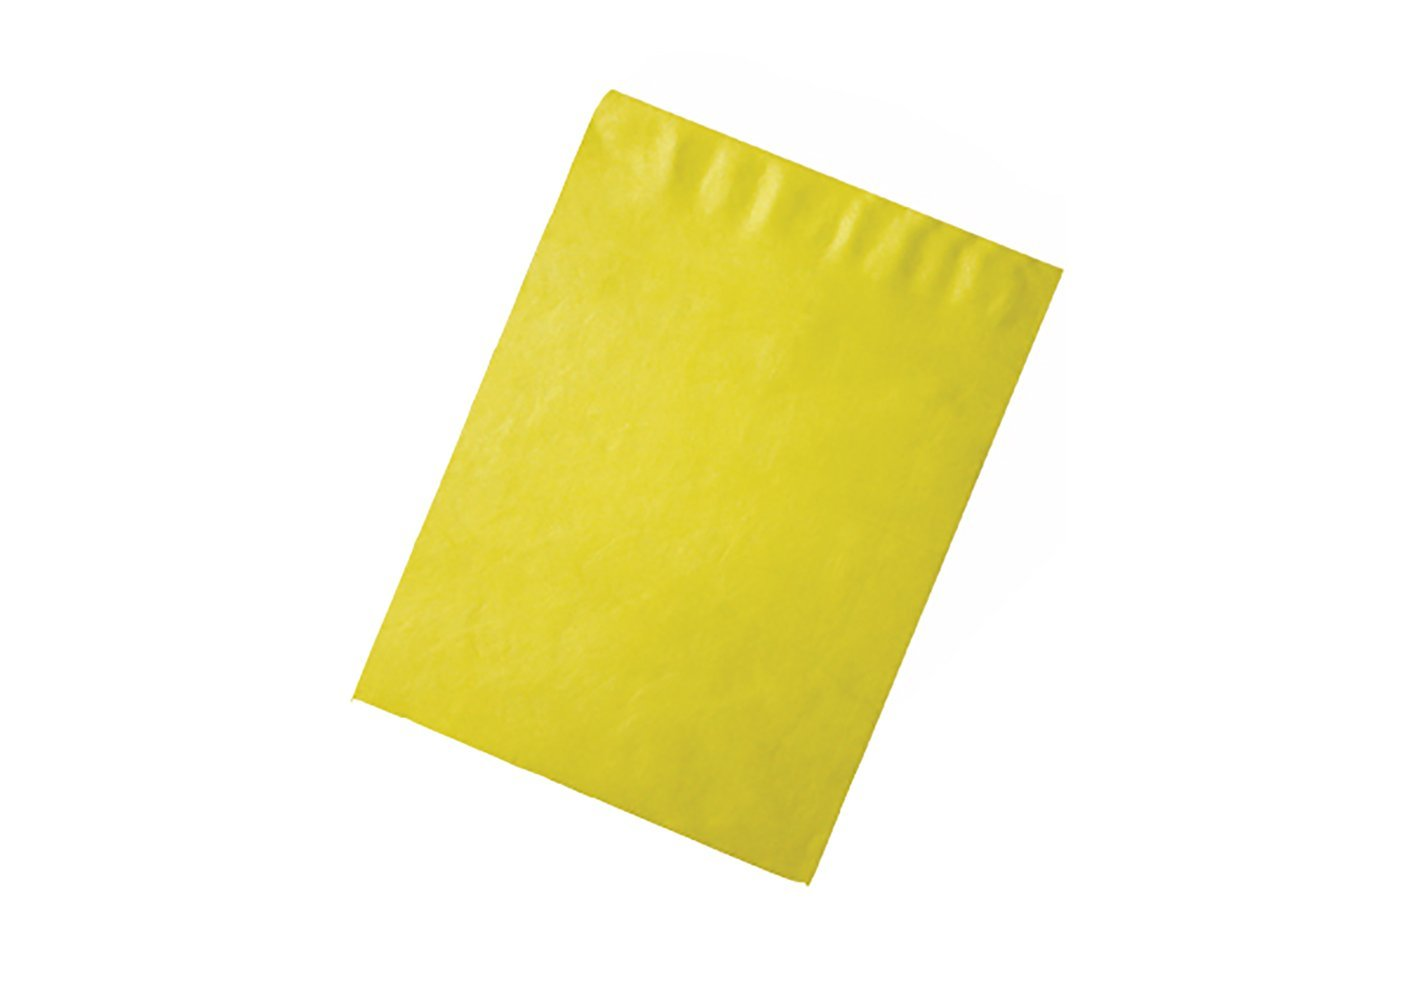 RetailSource E151201YT10 Tyvek Envelopes 15.5 x 12 x 1 Yellow Pack of 10